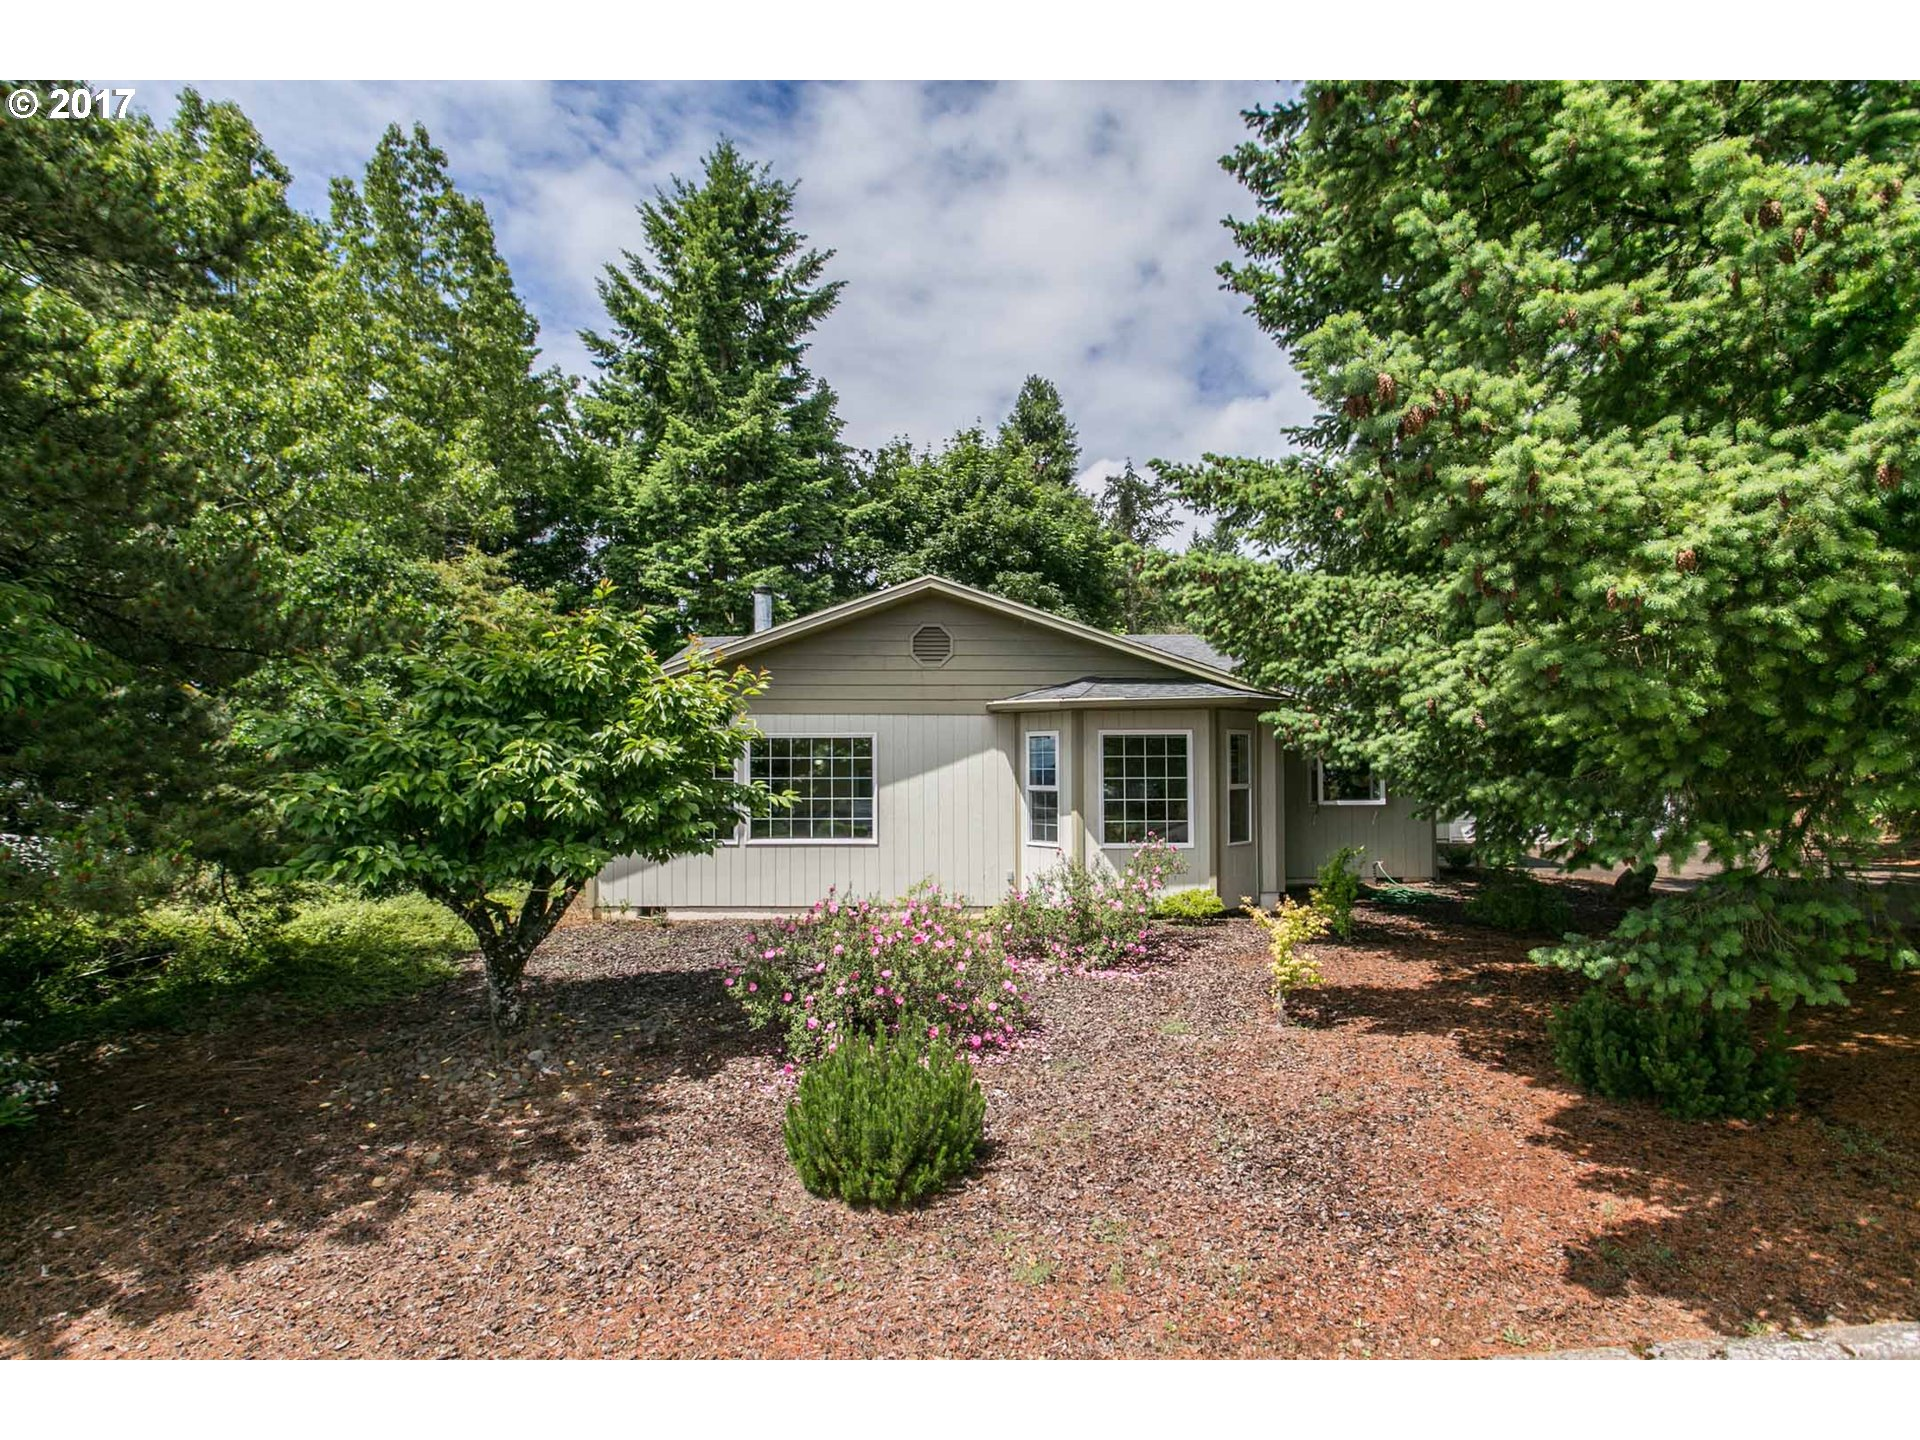 210 NW ALDER ST, Dundee, OR 97115